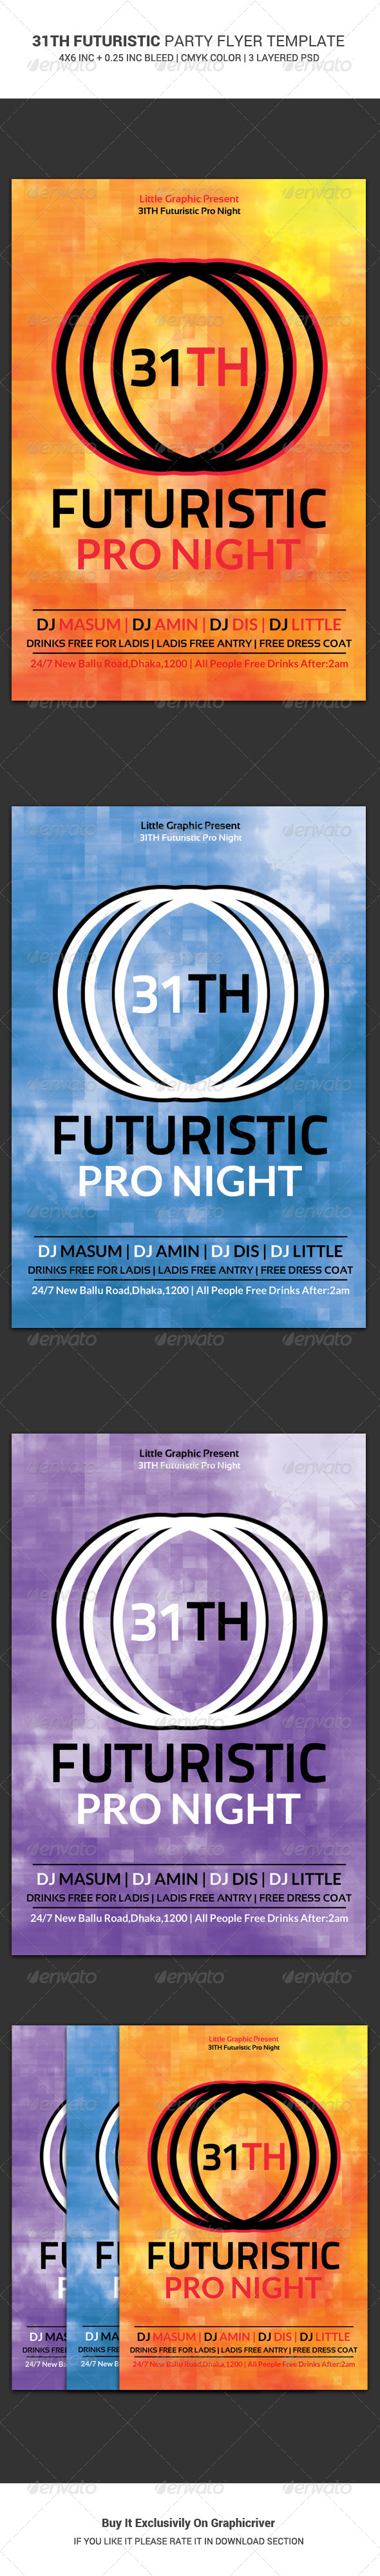 31th Futuristic Party Flyer Template - Clubs & Parties Events